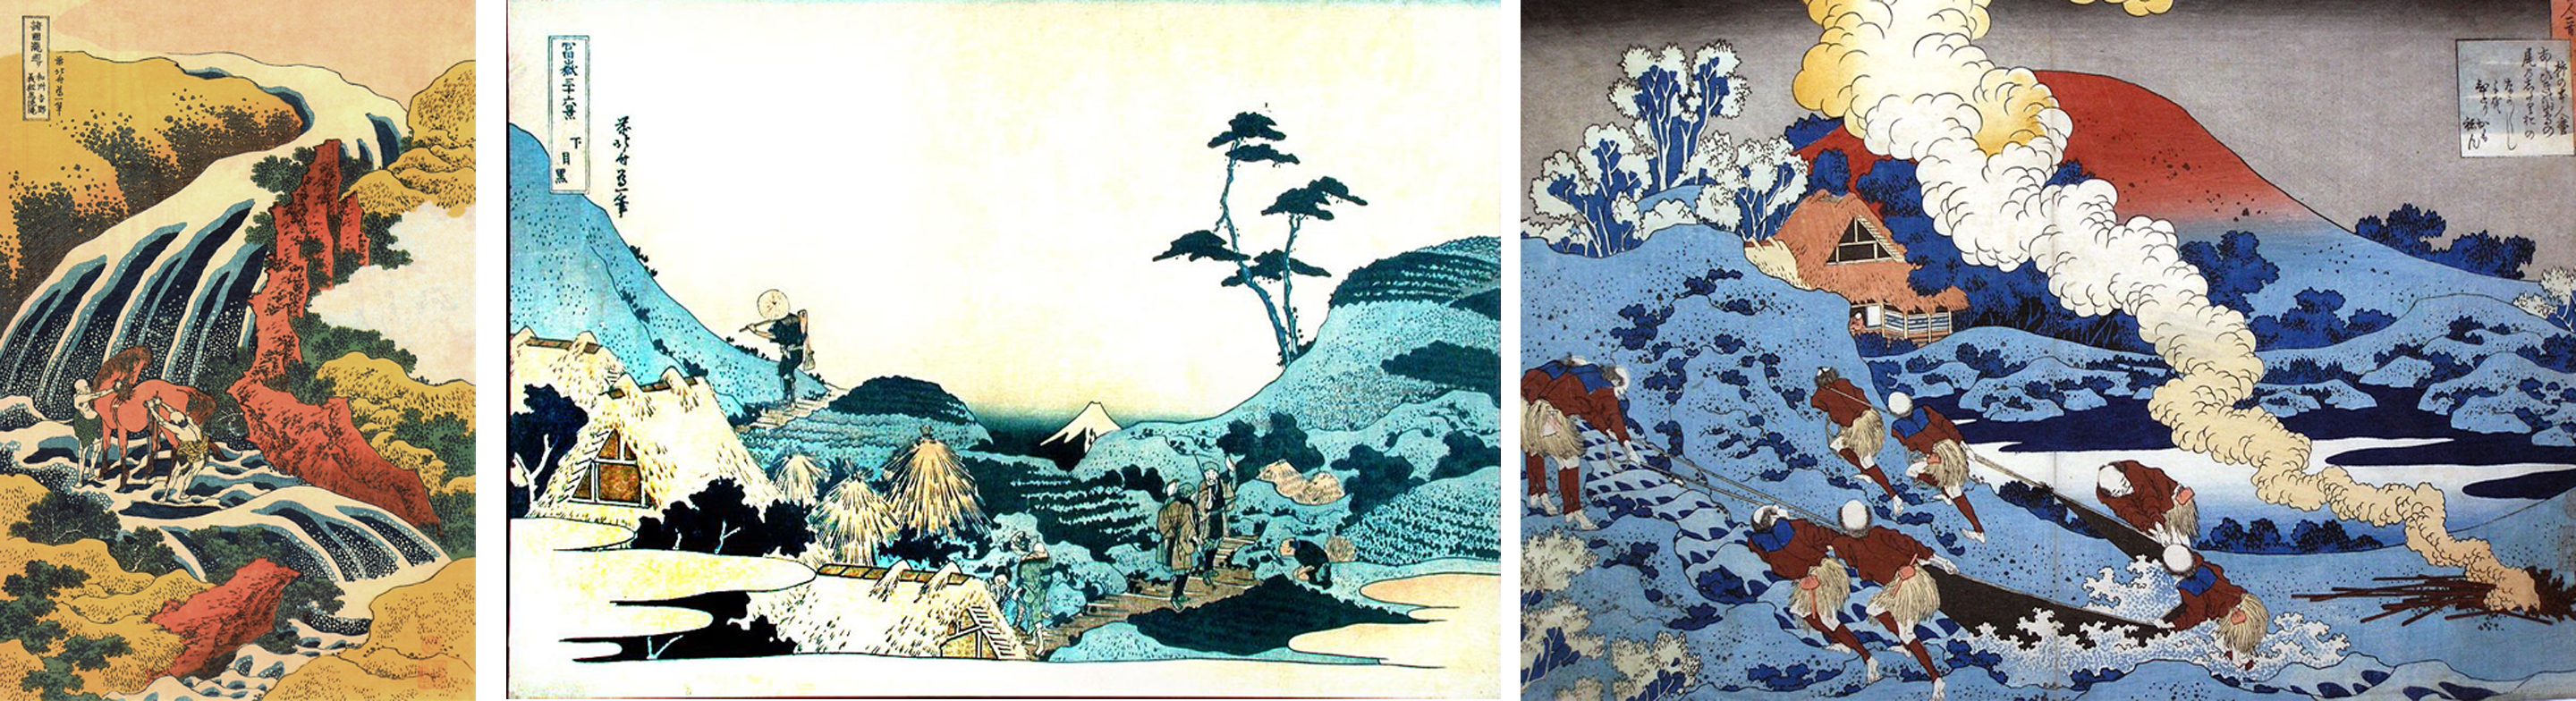 Hokusai collage